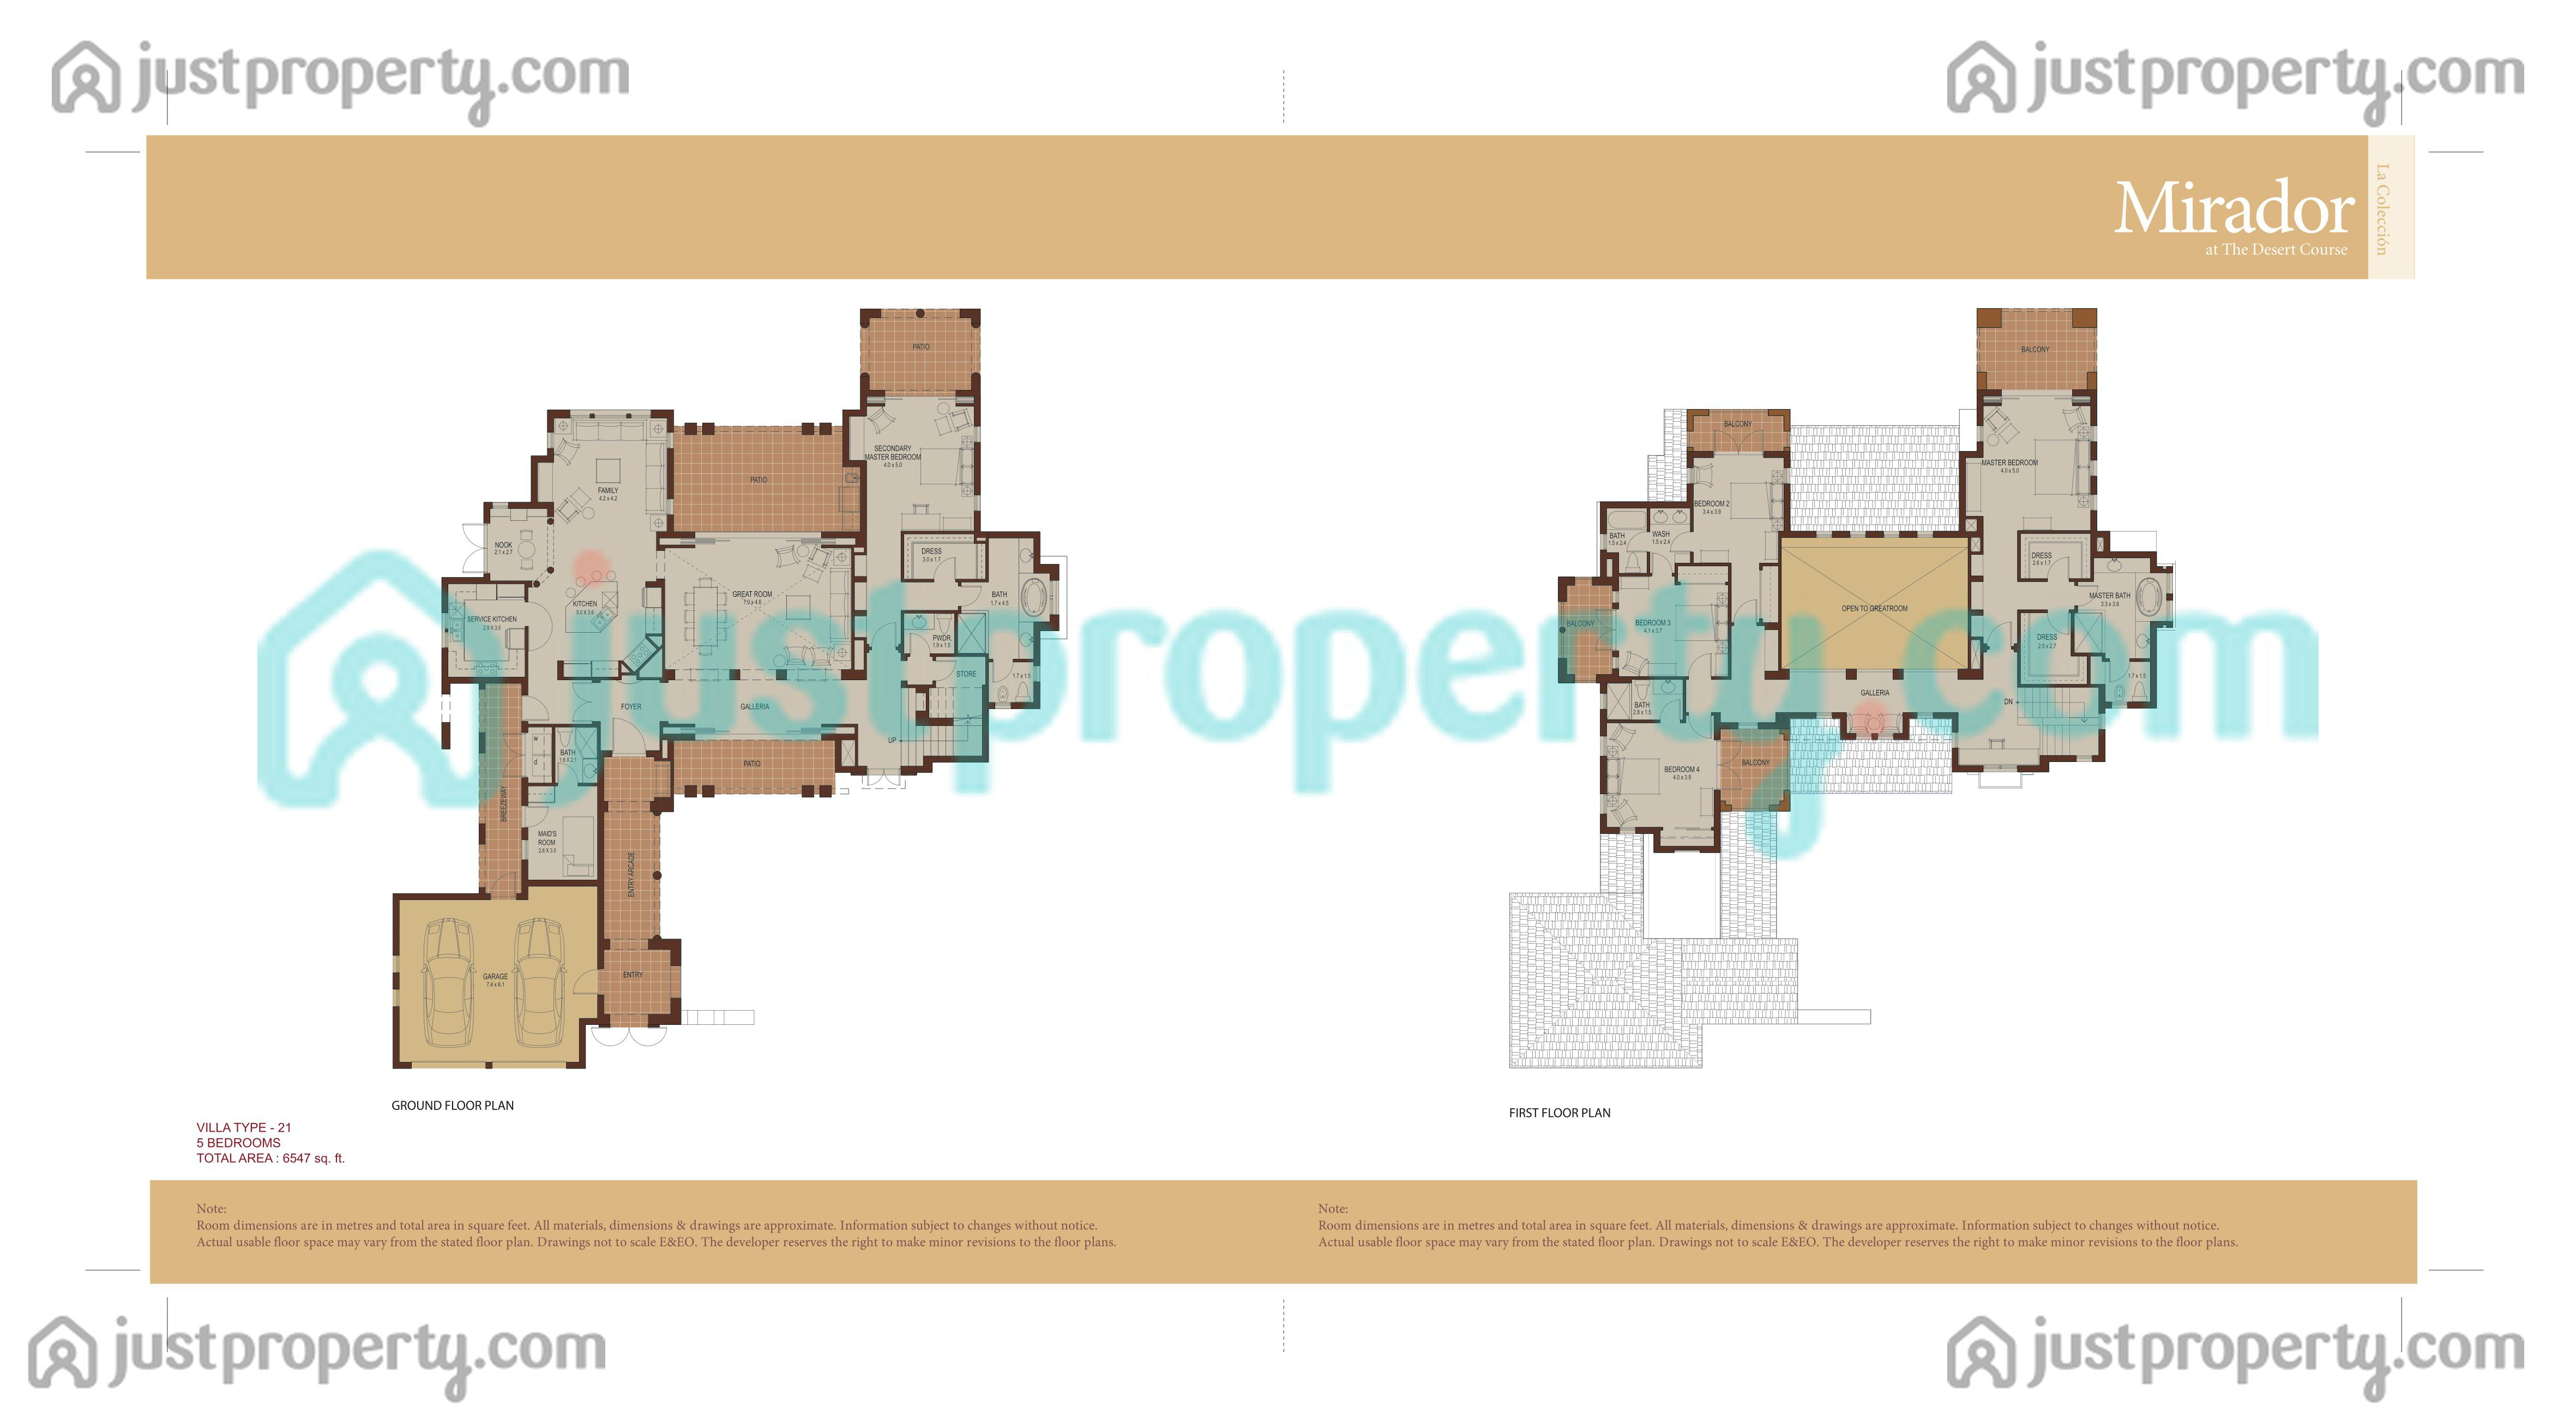 Mirador La Coleccion Floor Plans